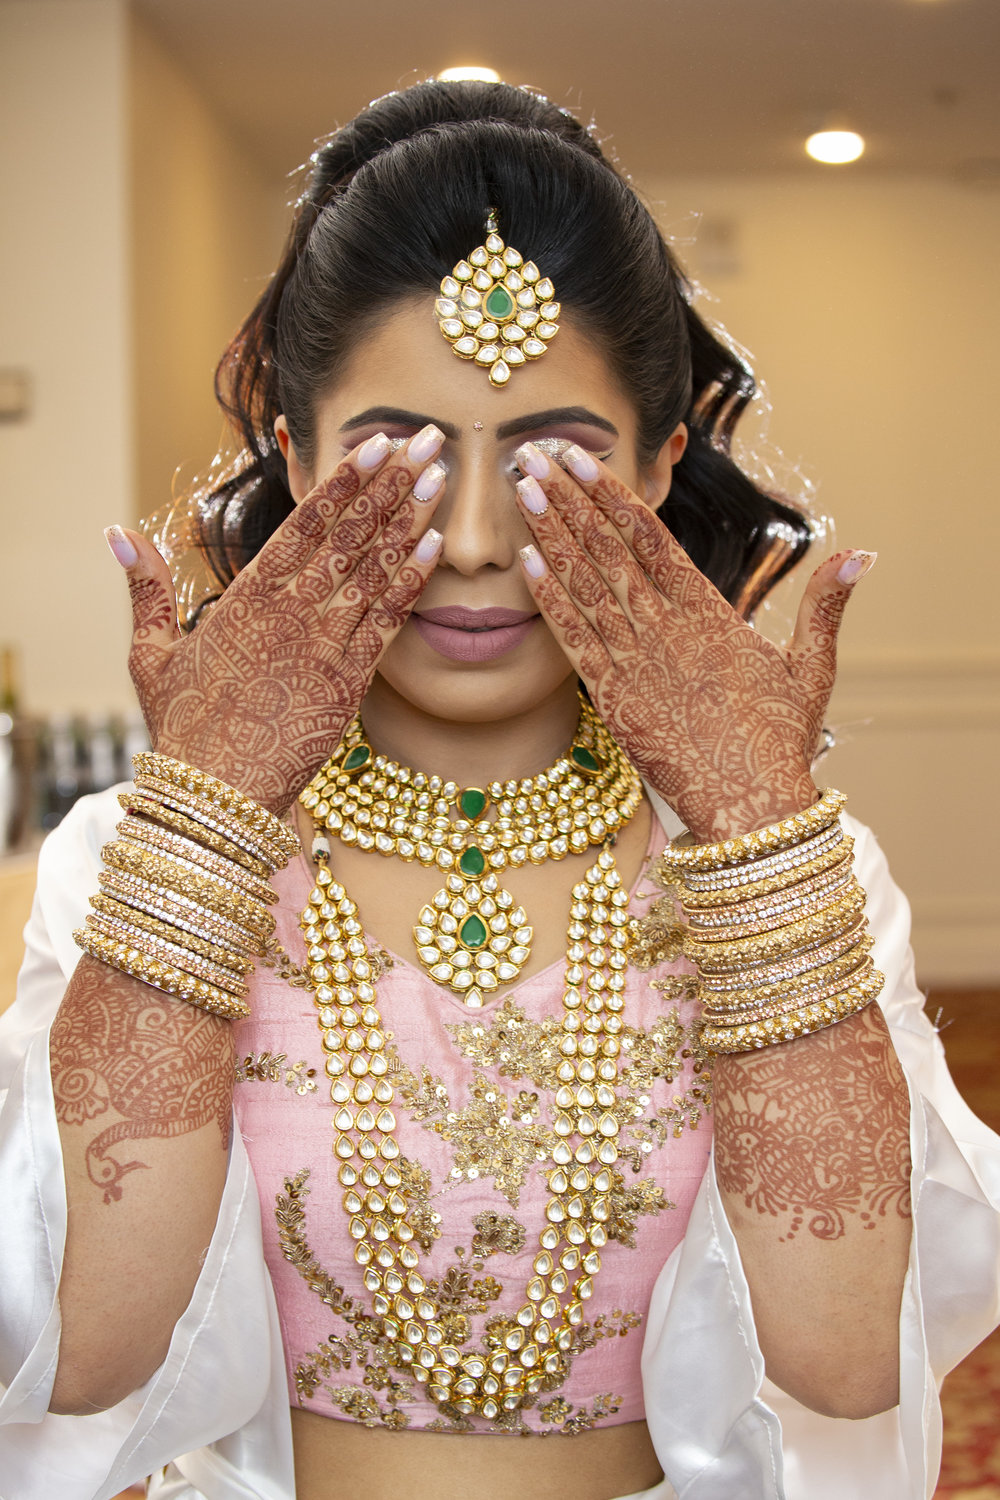 INDIAN WEDDING BRIDE GETTING READY.JPG